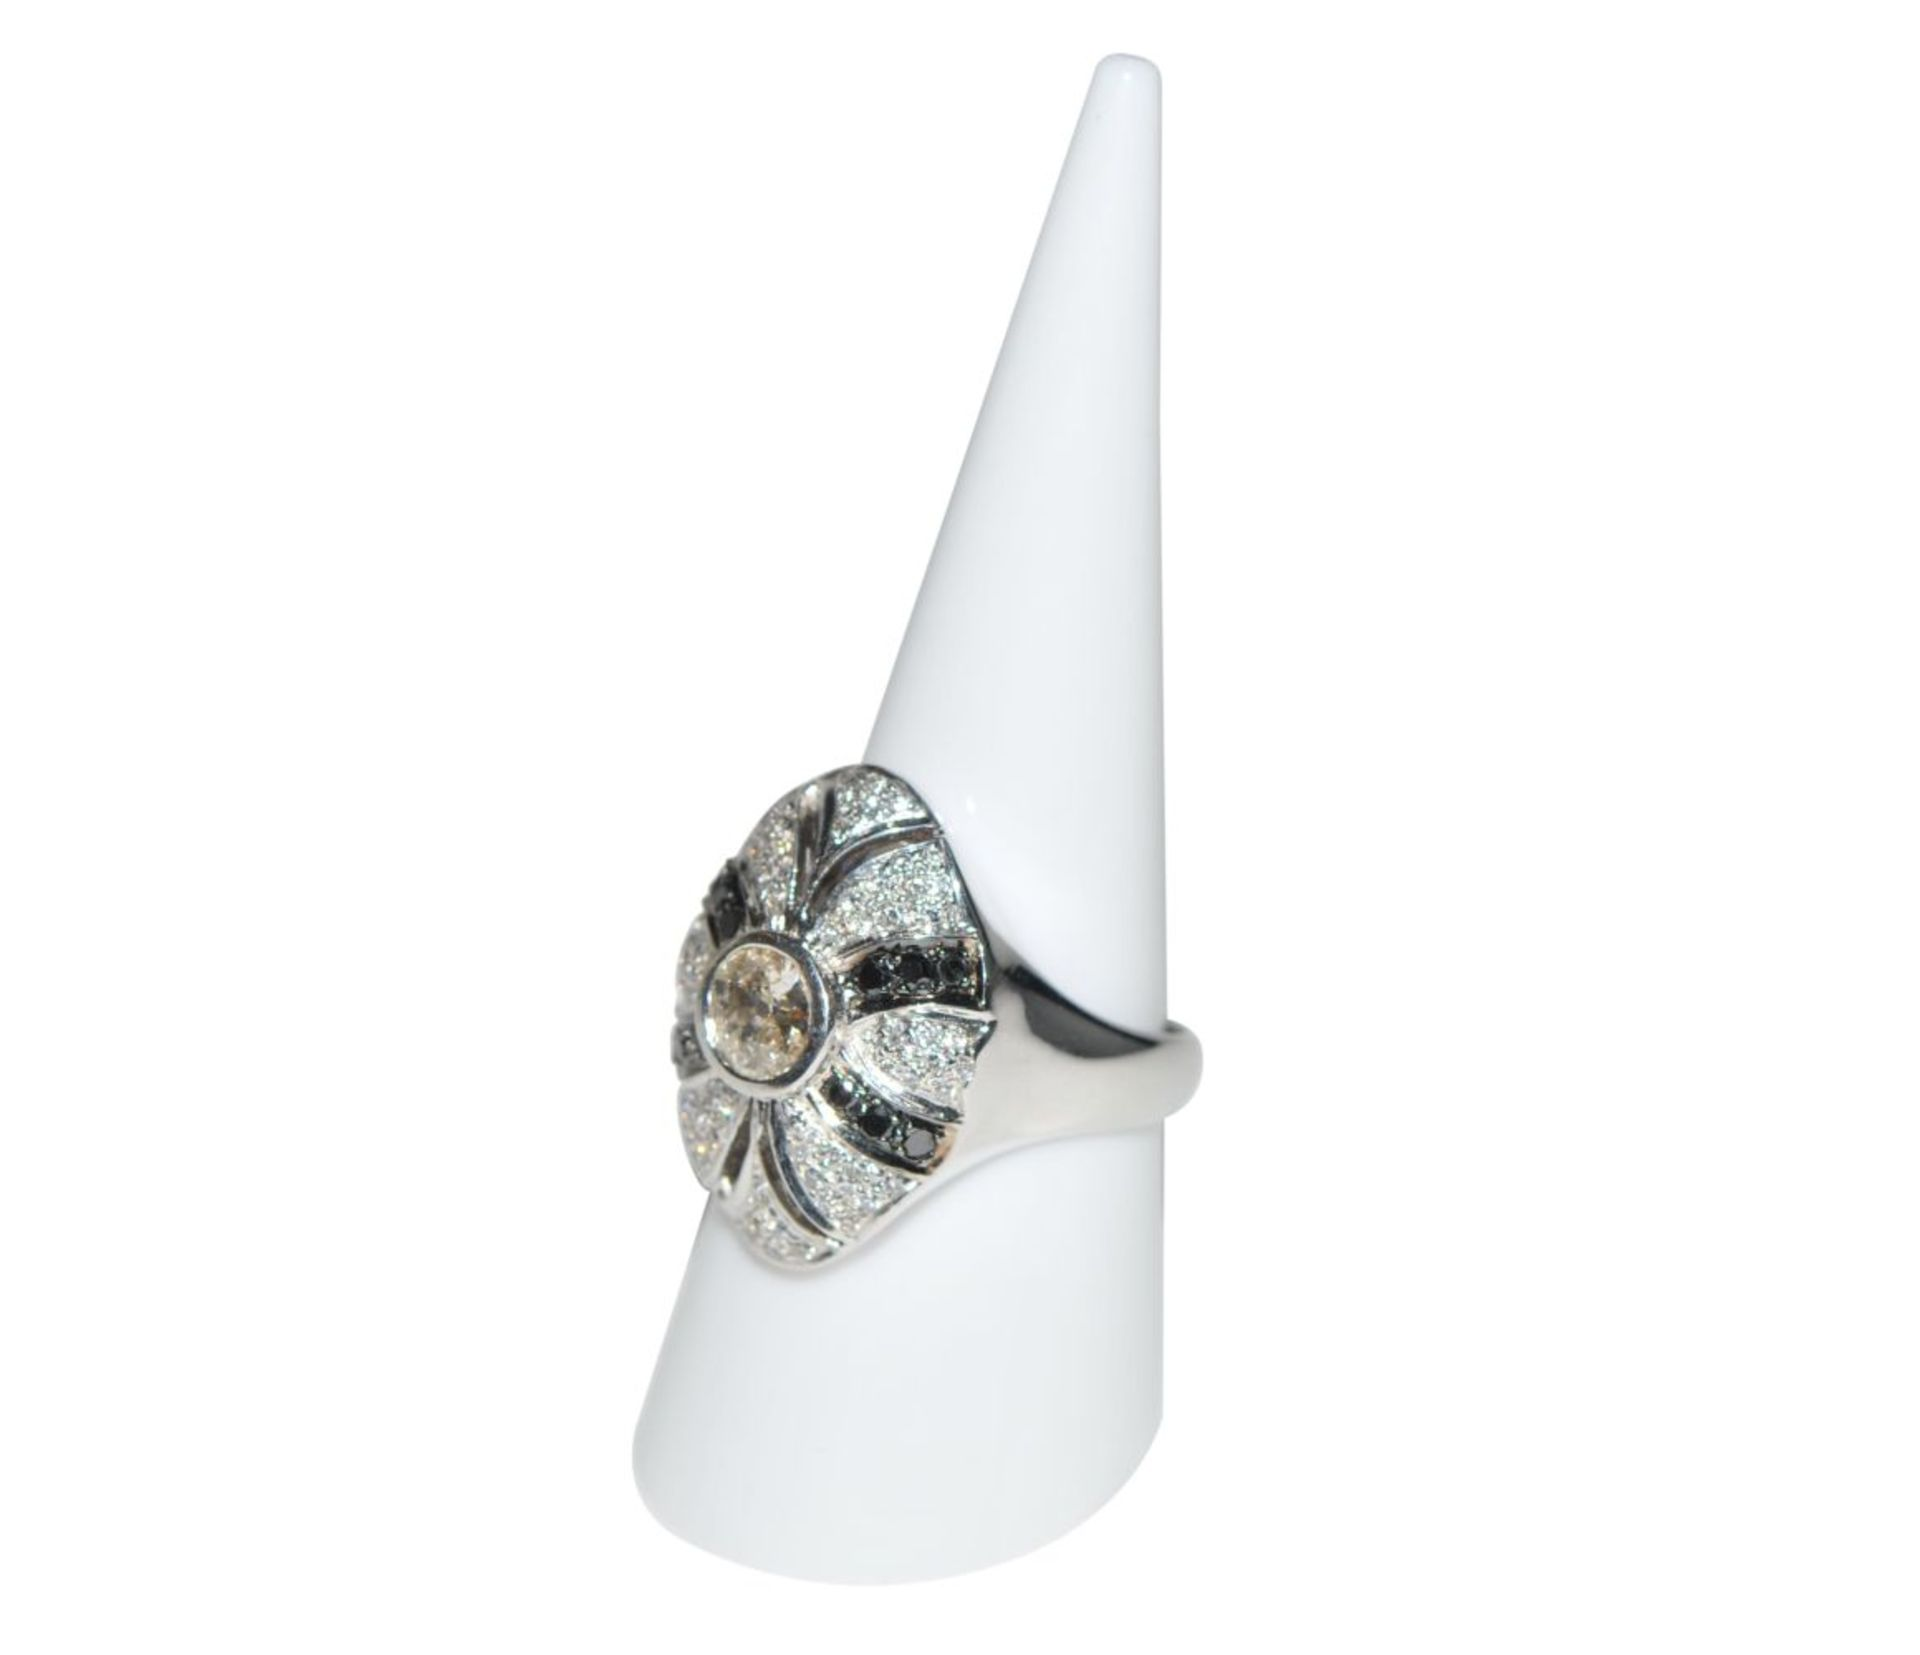 Los 97 - Diamond ring18Kt white gold ring with an old cut diamond, approx. 0.46ct, diamonds, approx. 0.38ct